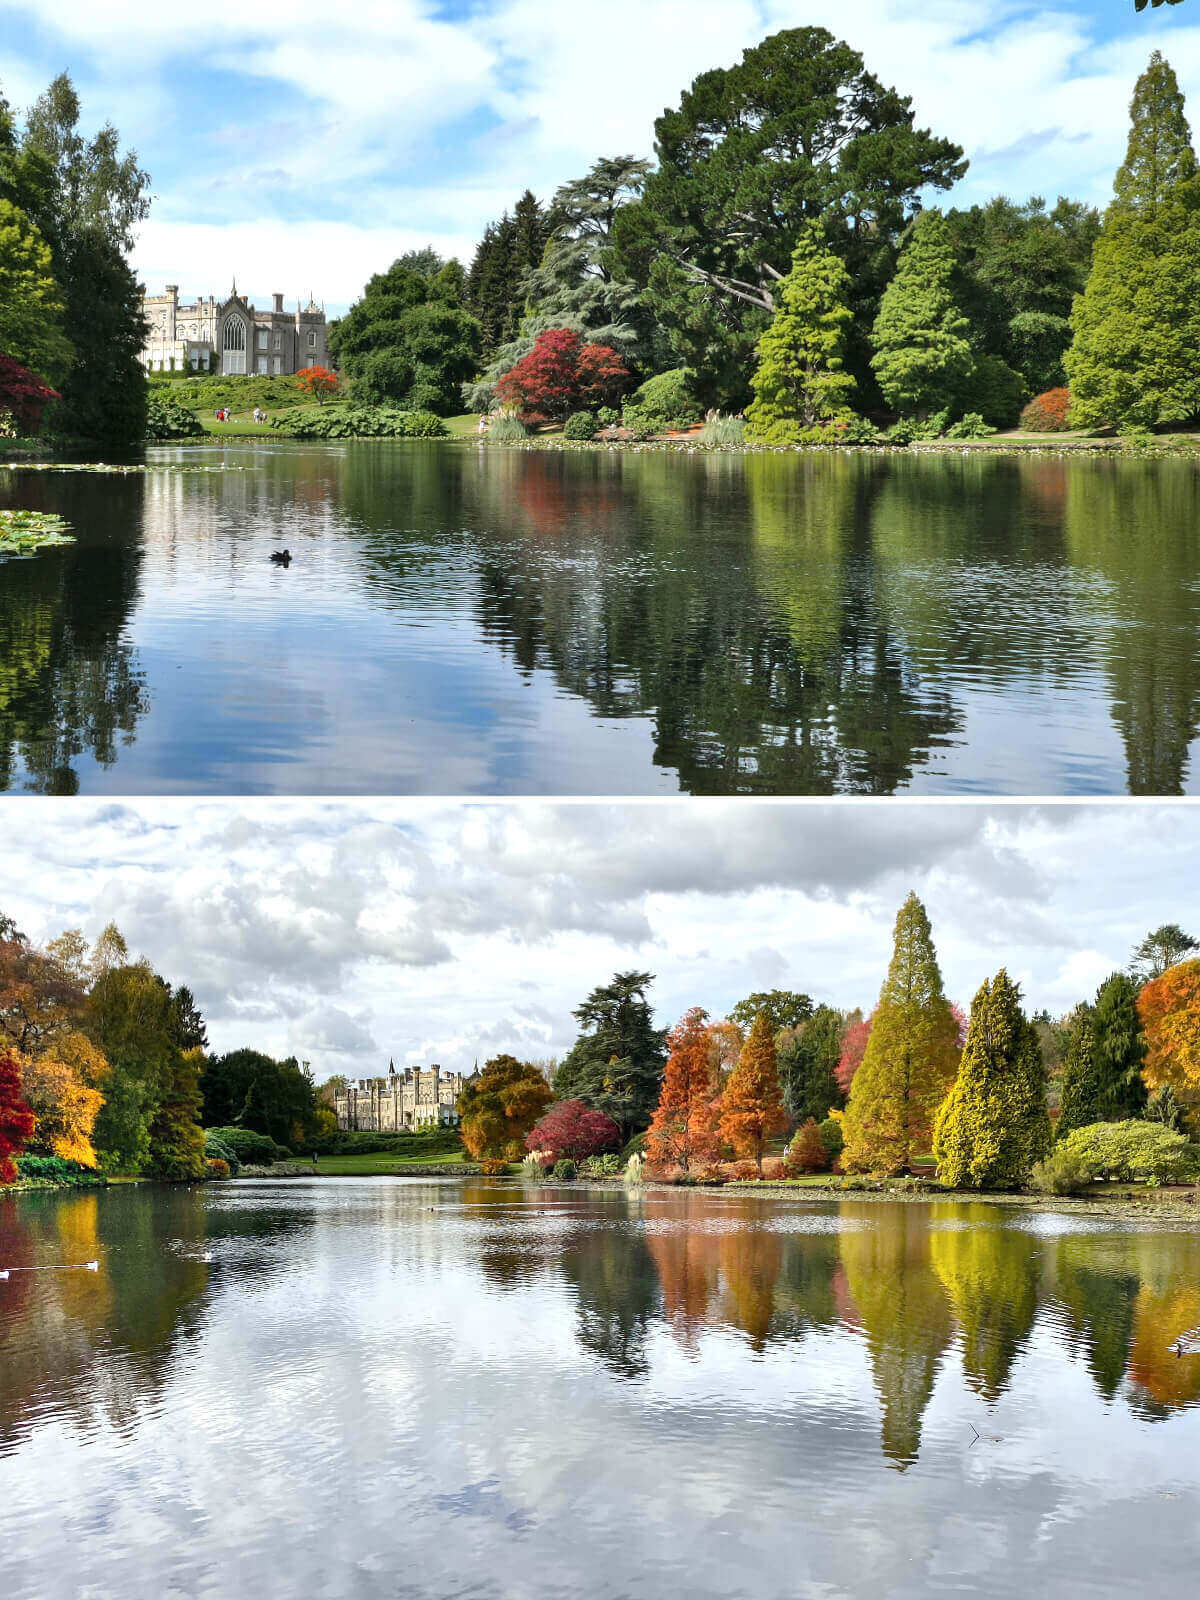 Sheffield Park and Garden, England